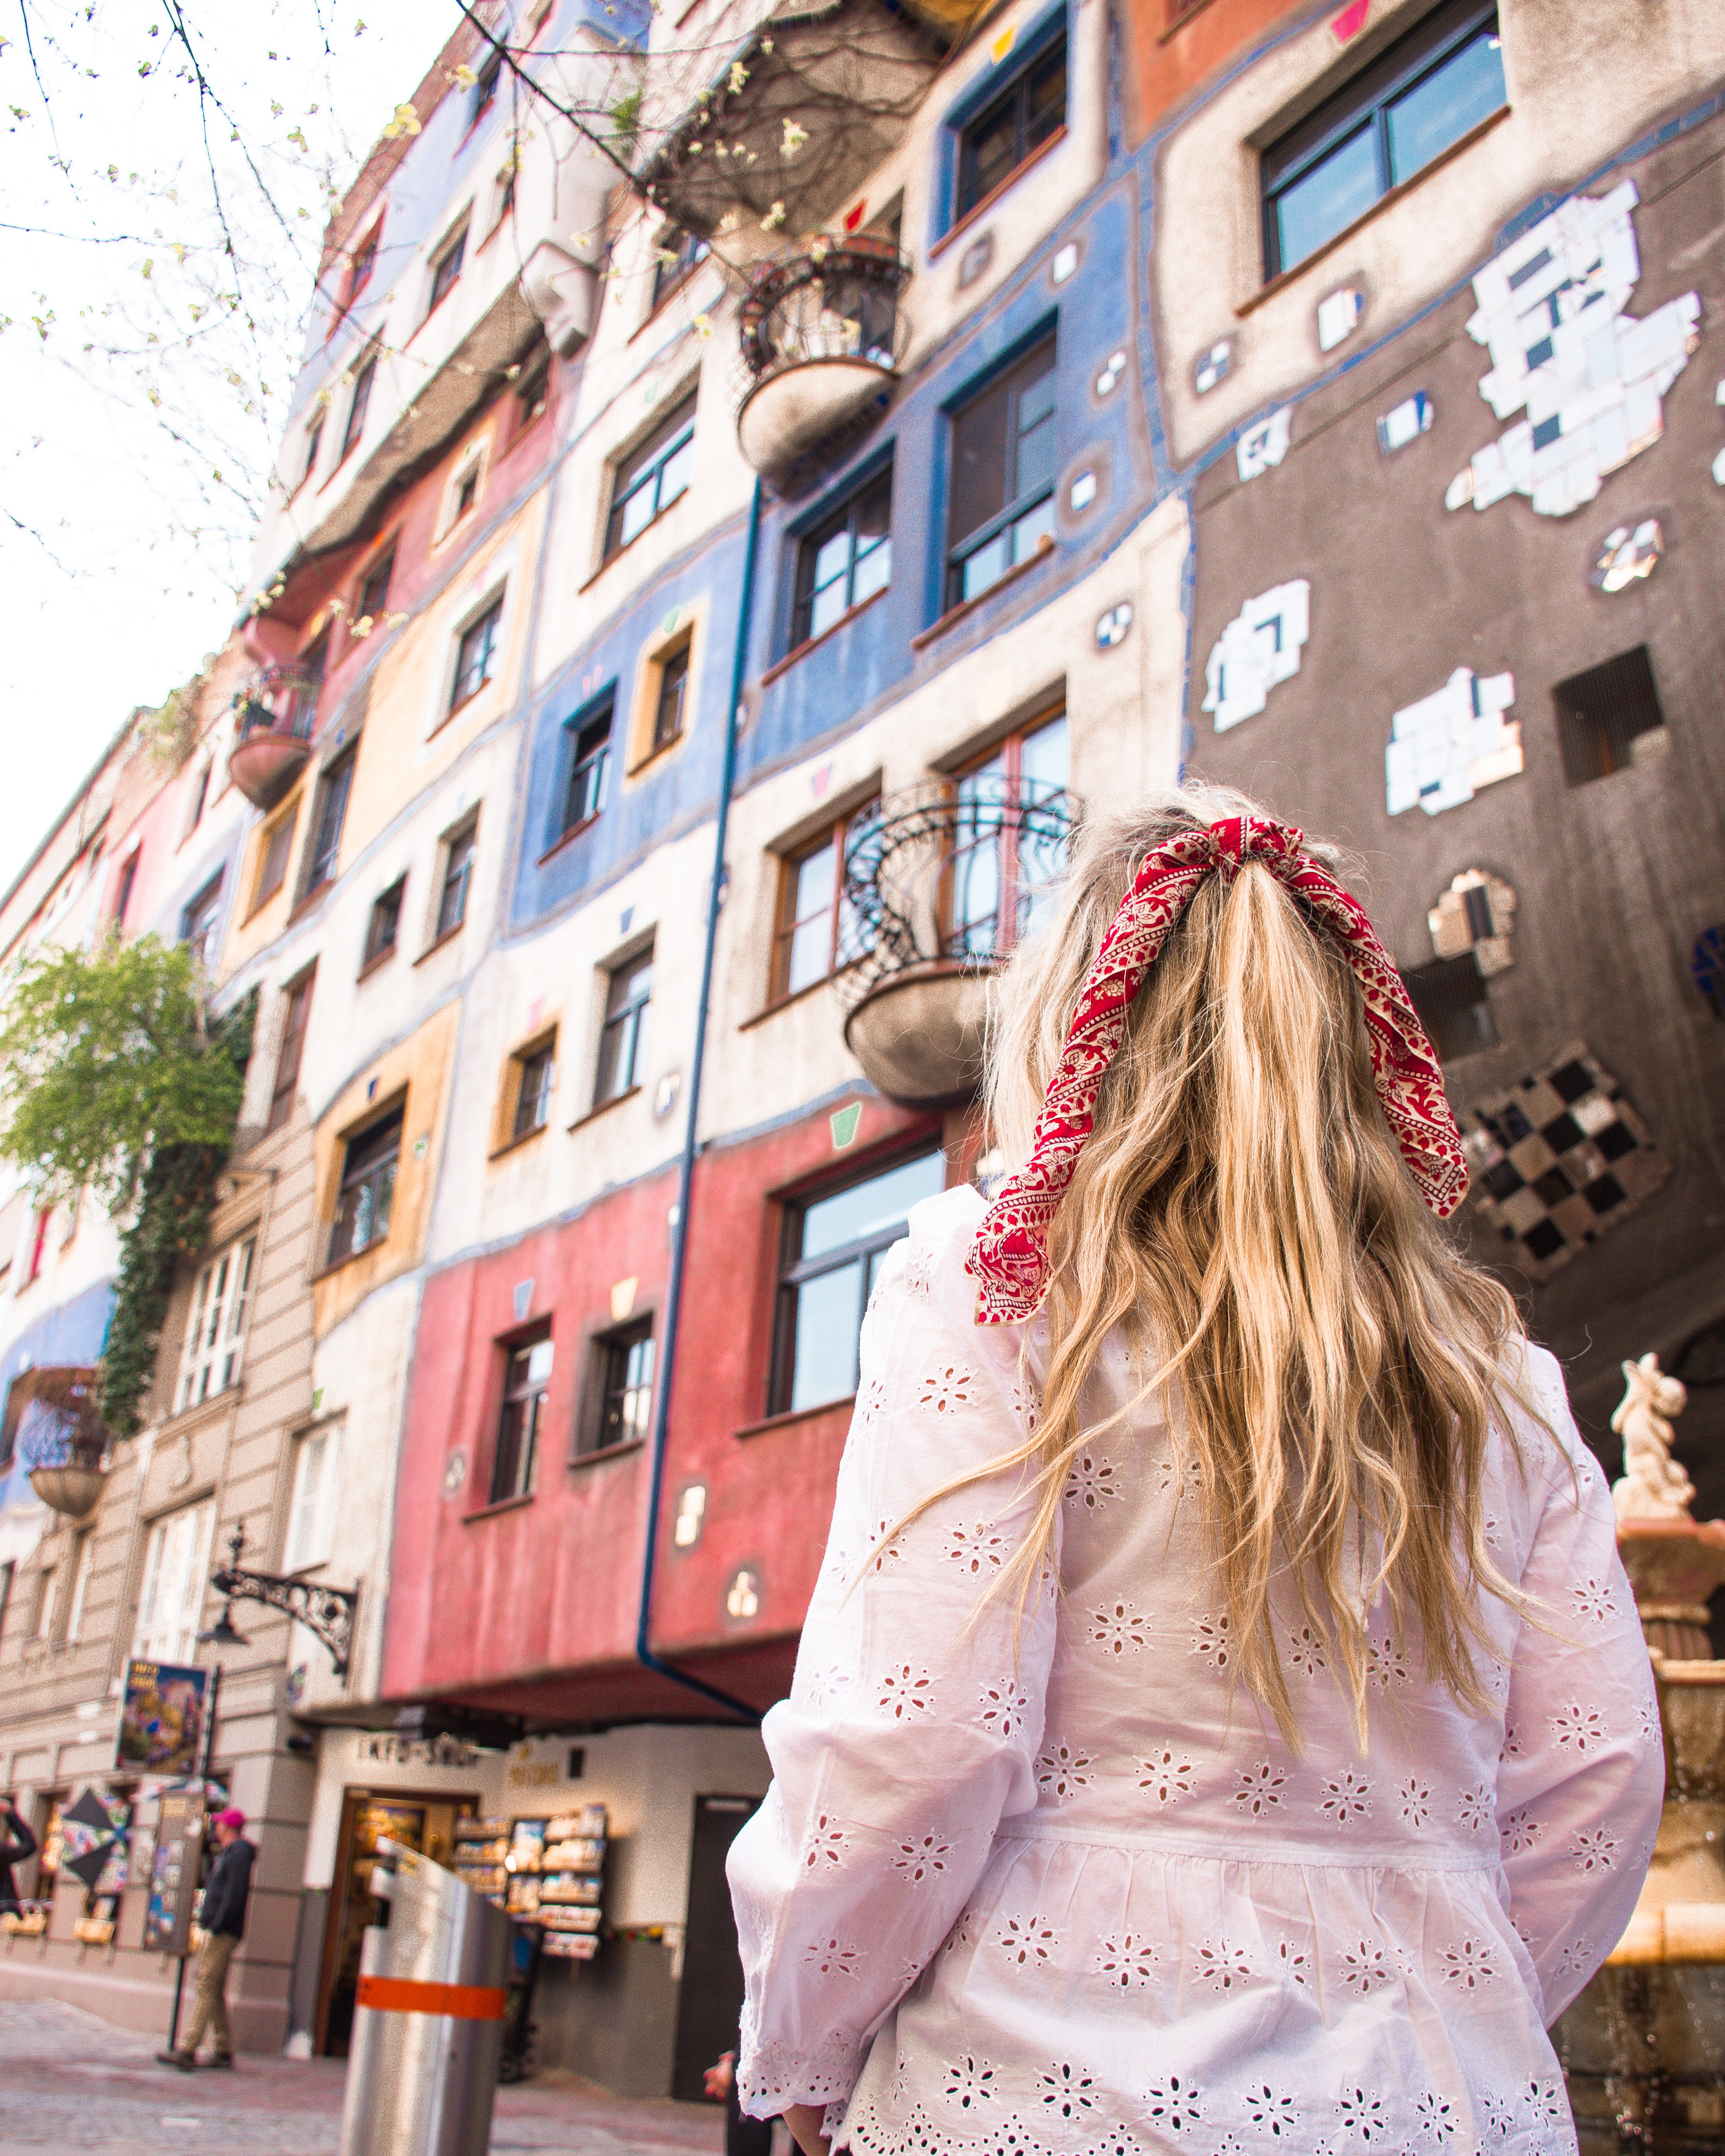 The Hundertwasser House is a striking change of architecture to the generally opulent feel of most Viennese buildings.